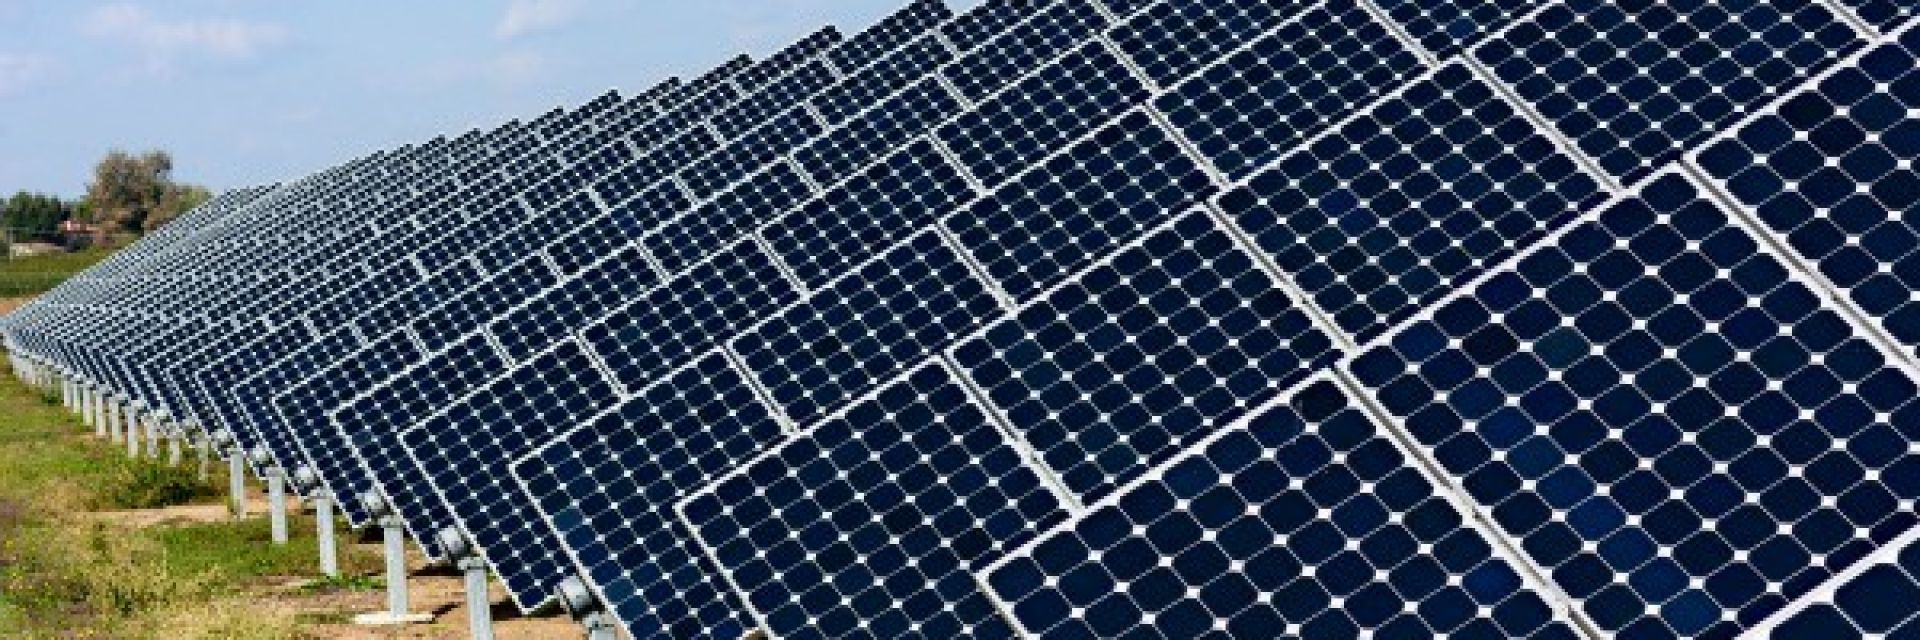 Zernike solar panels provide clean energy for research